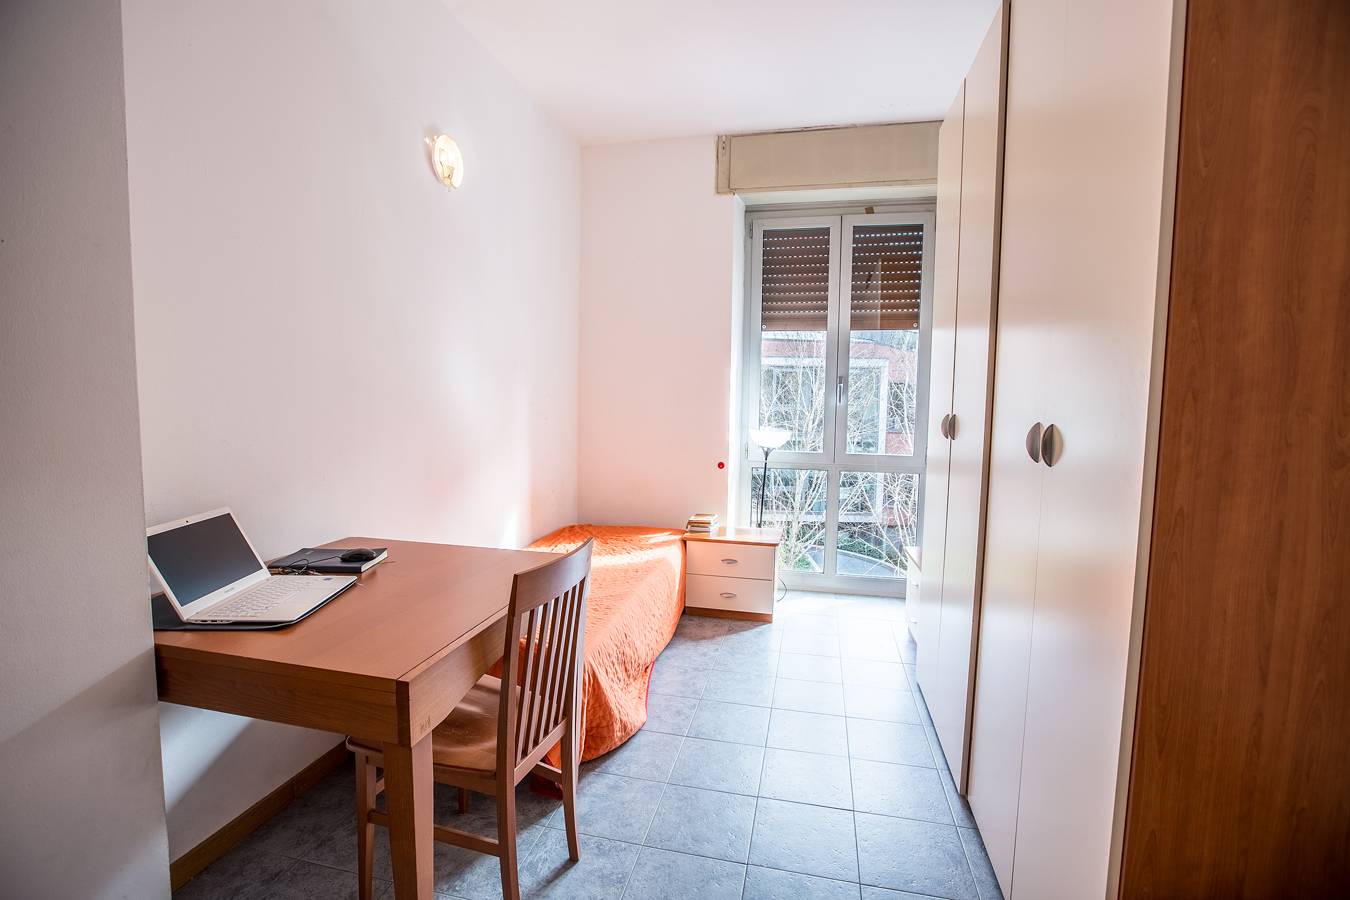 Student Accomodation for rent in double room in Via Monte San Genesio, 21, in Milano, Italy